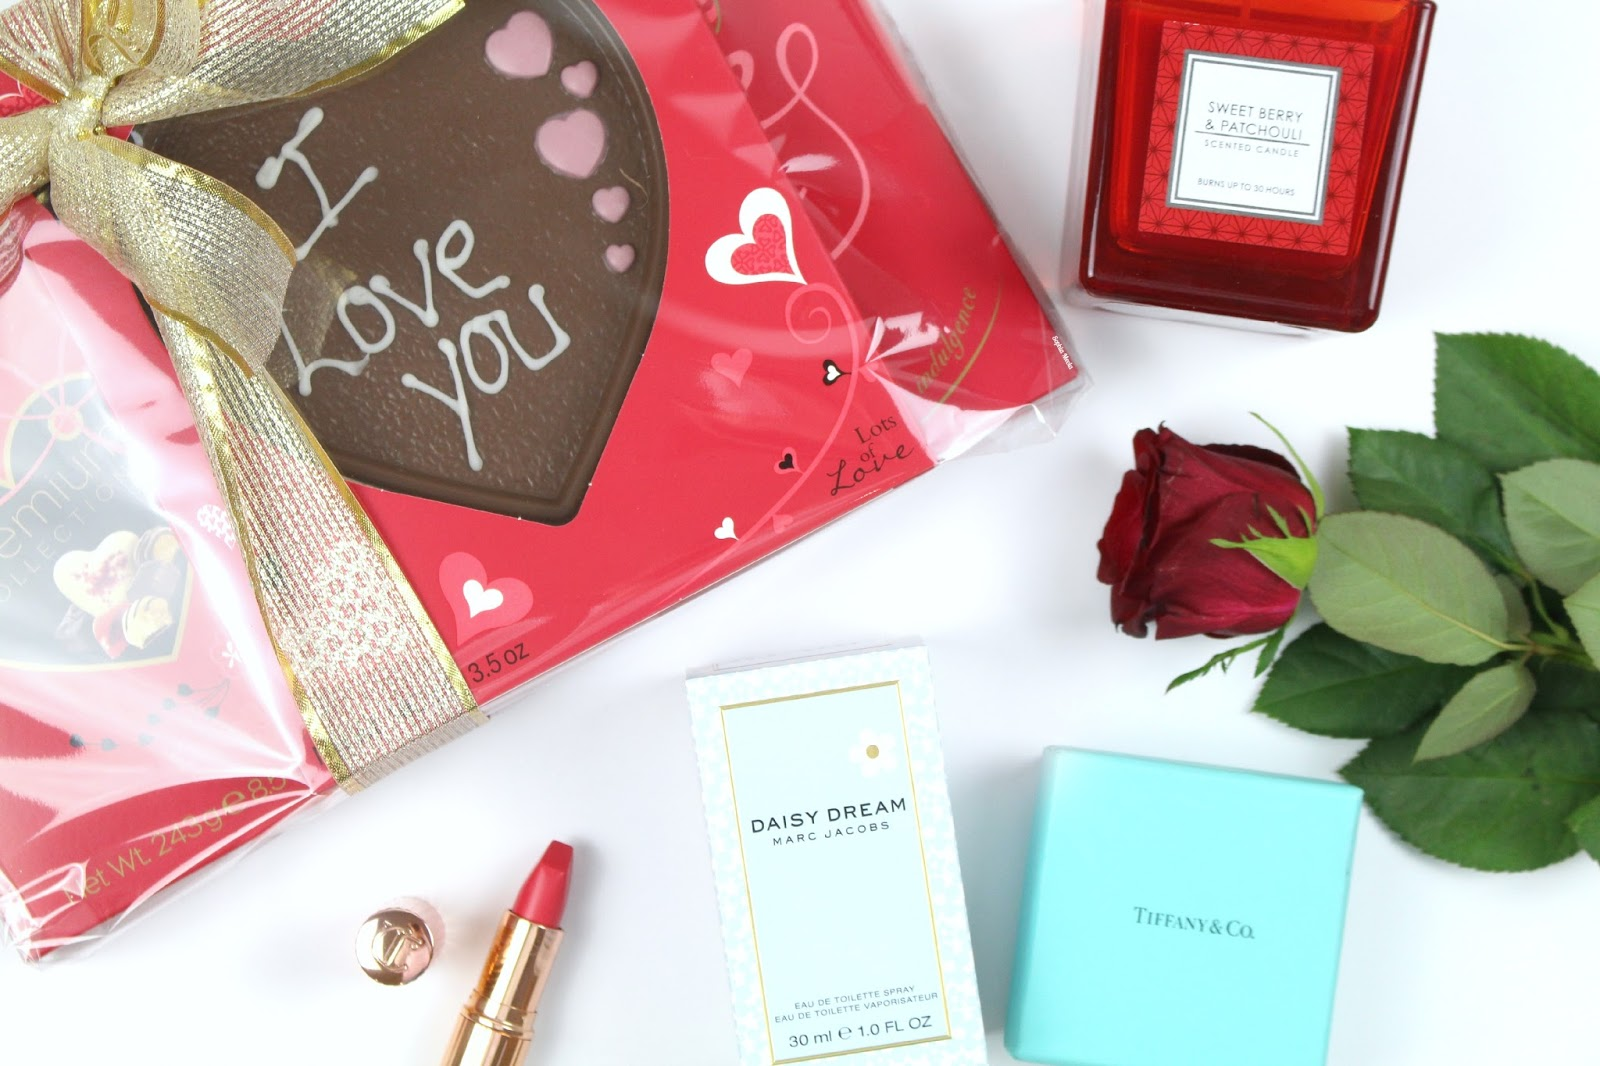 LAST MINUTE VALENTINES GIFT GUIDE FOR HER